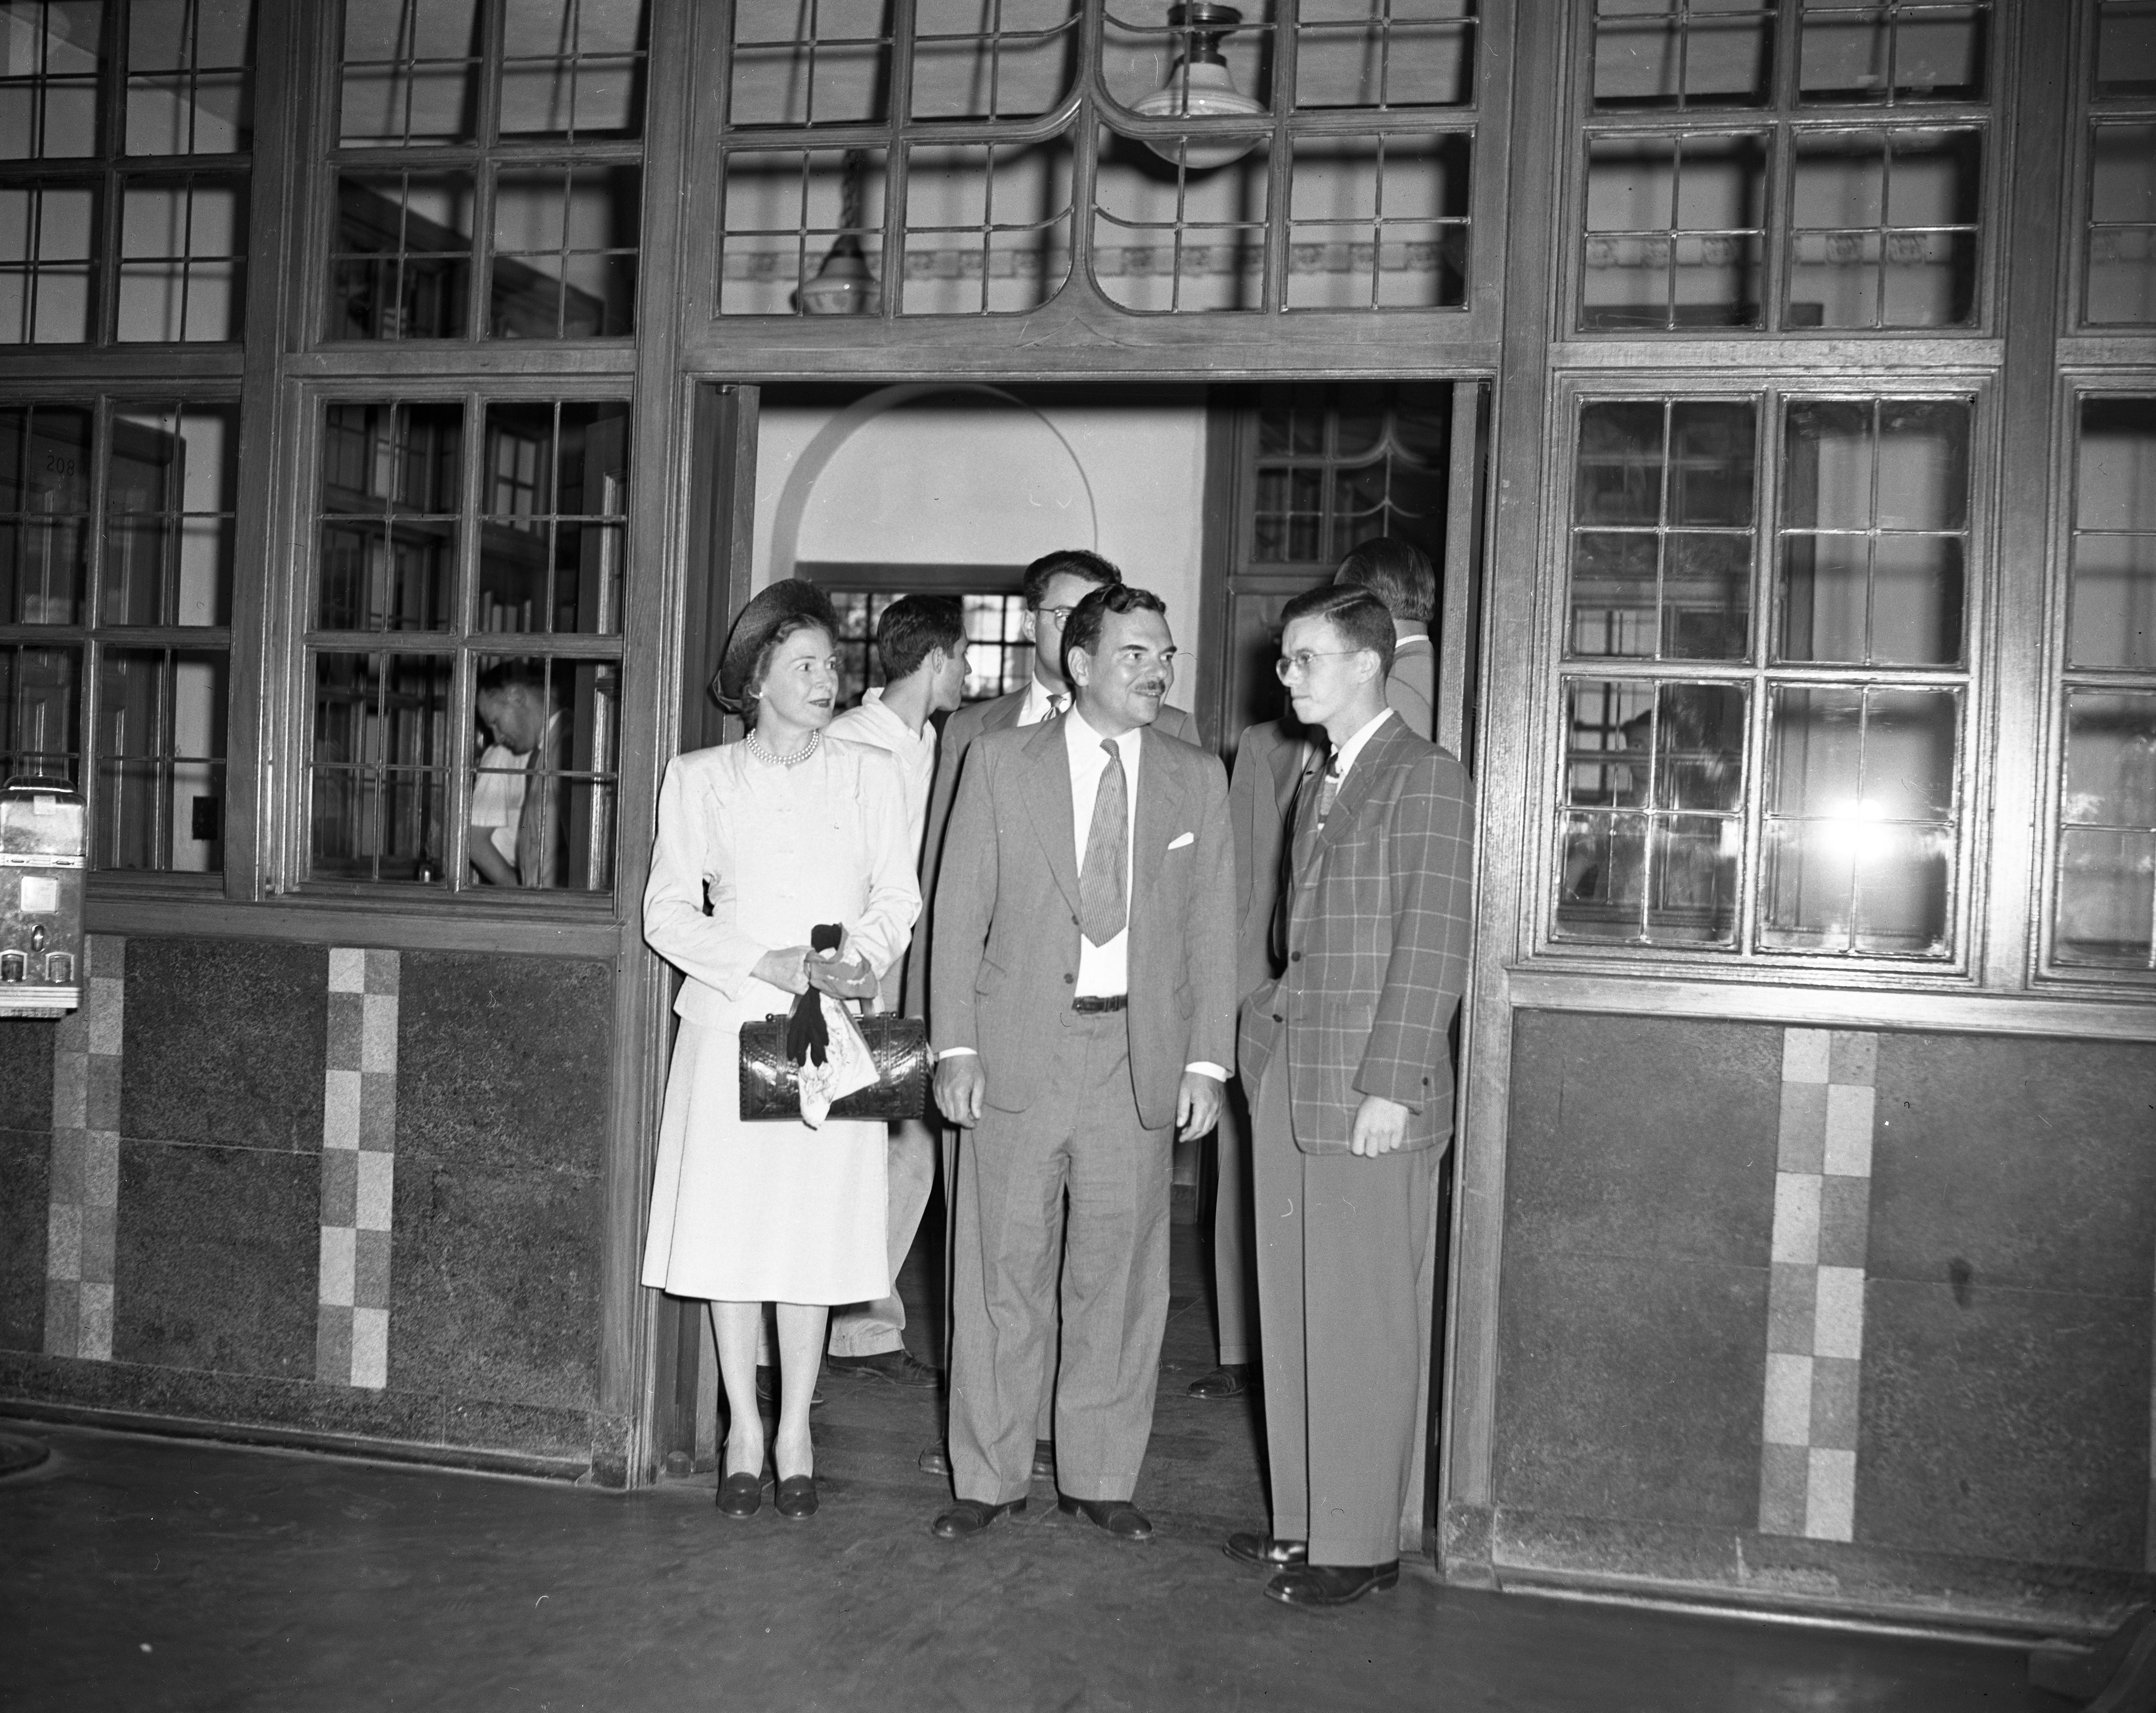 Gov. Thomas E. Dewey and Frances Hutt Dewey Meet Students at the Union During University of Michigan Campus Tour, July 1947 image